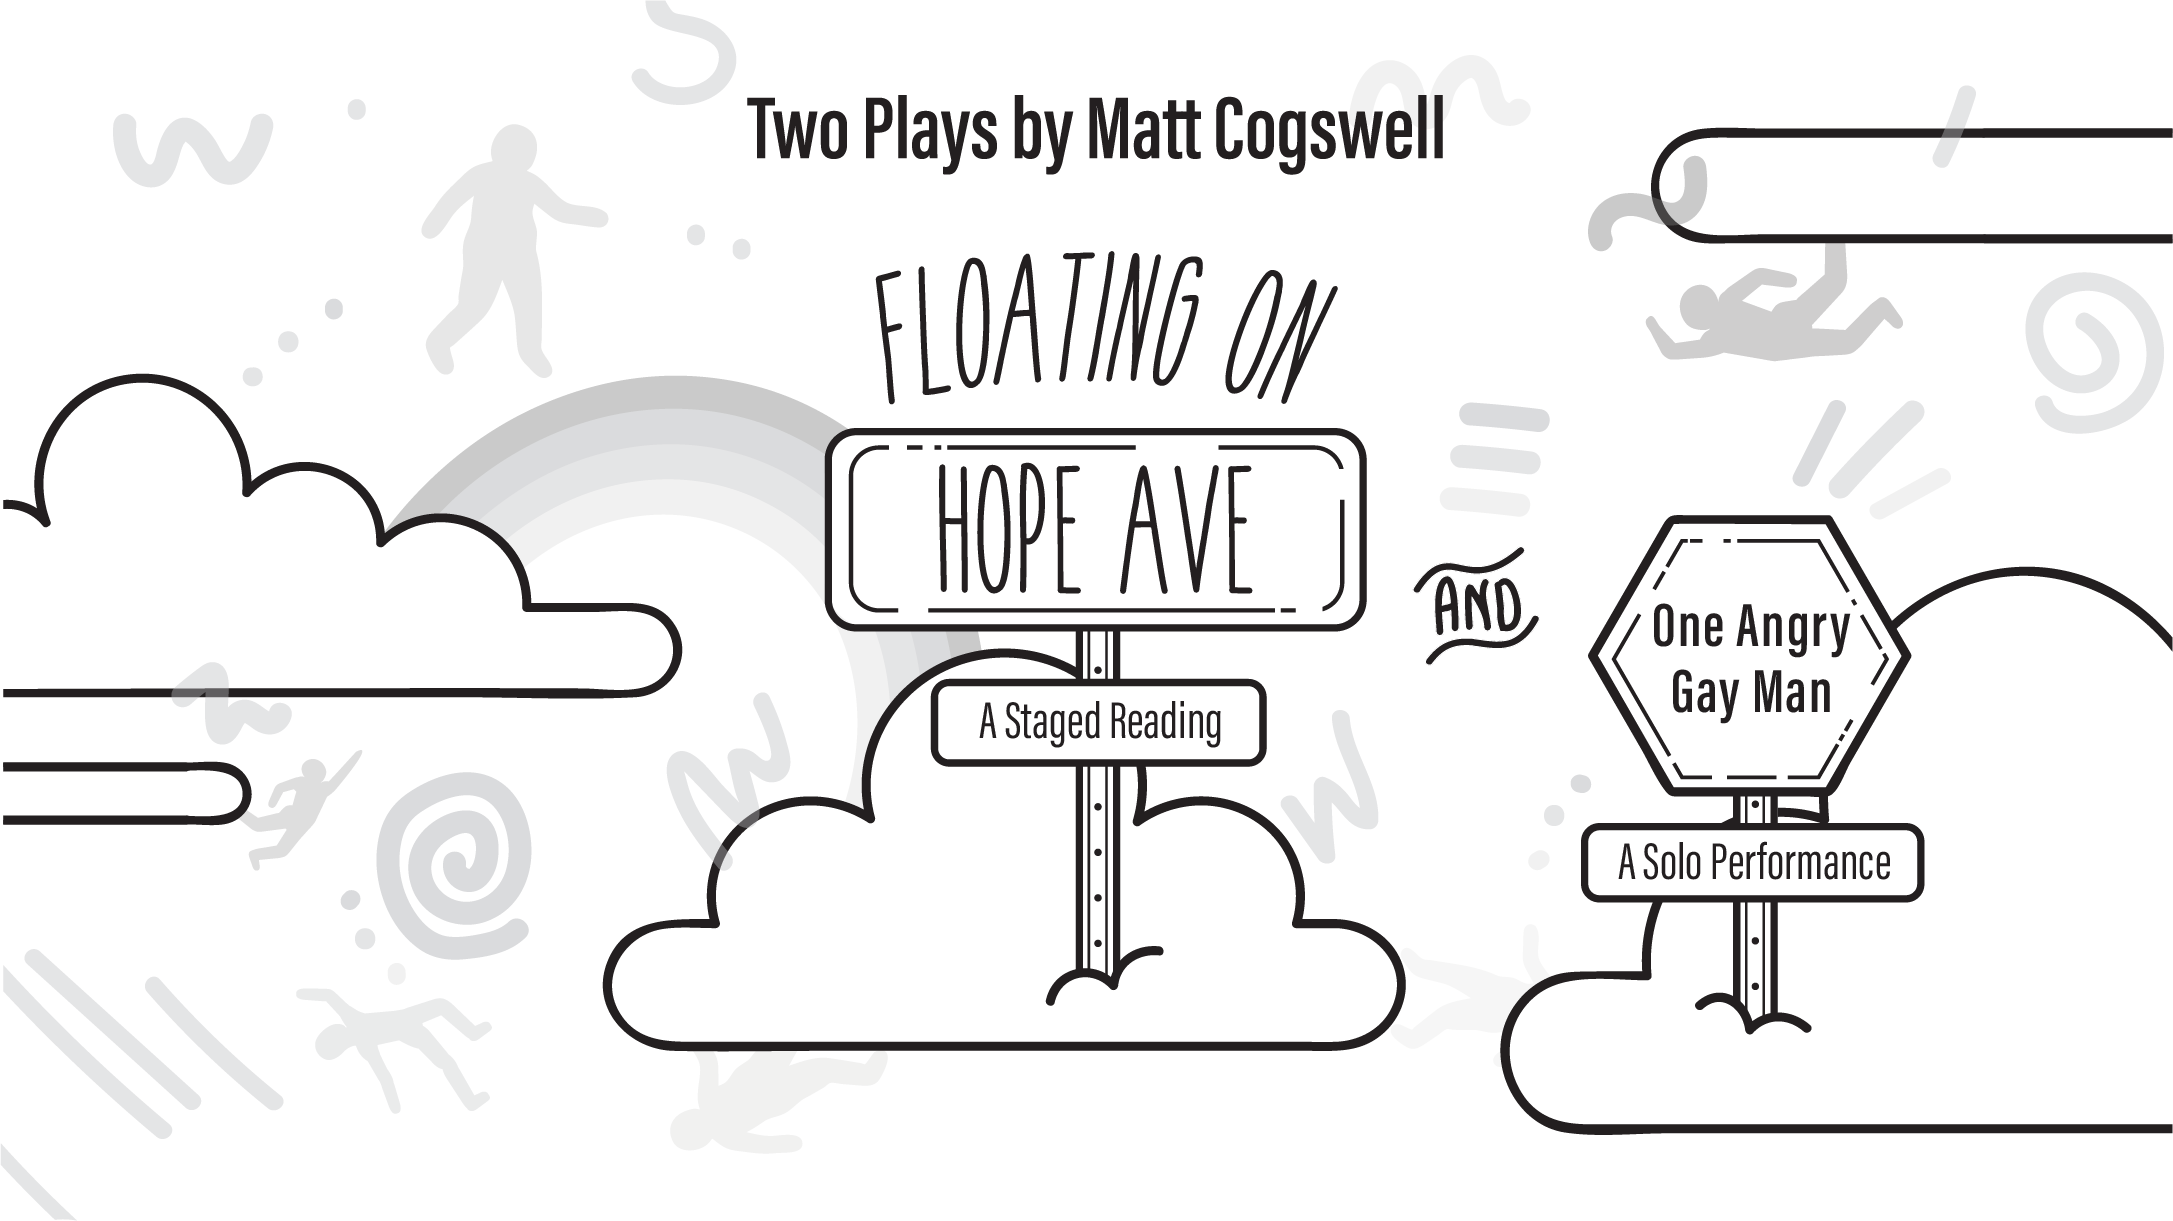 floating on hope ave event photo.png